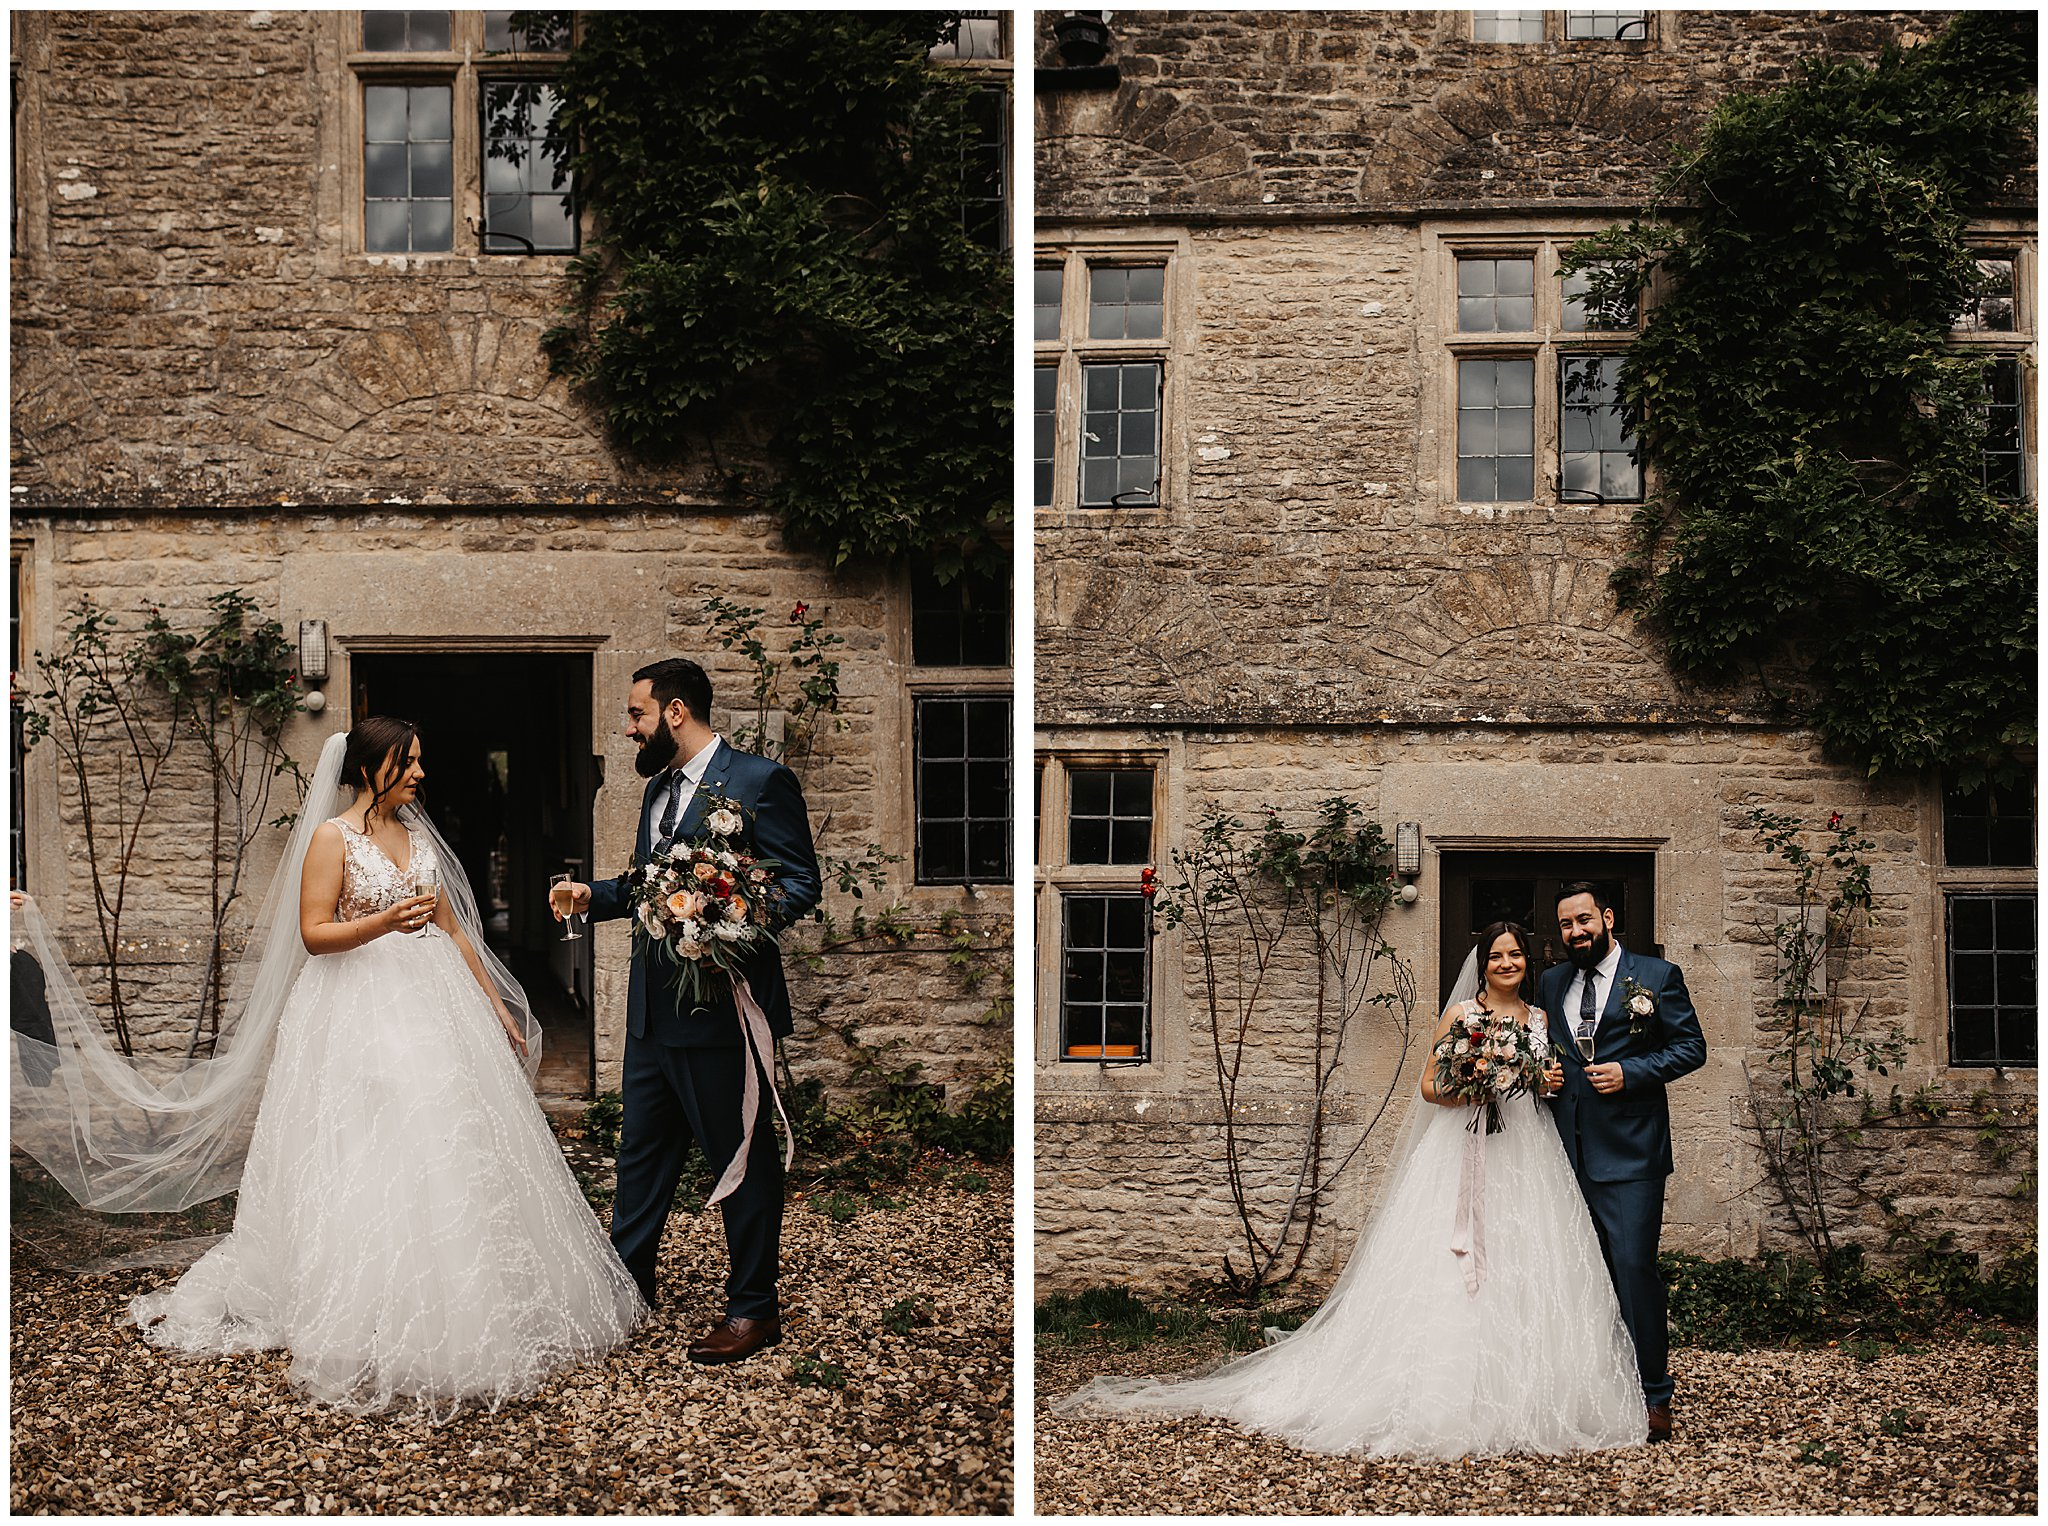 Max & Ksenia Autumnal Wiltshire Wedding-345.jpg